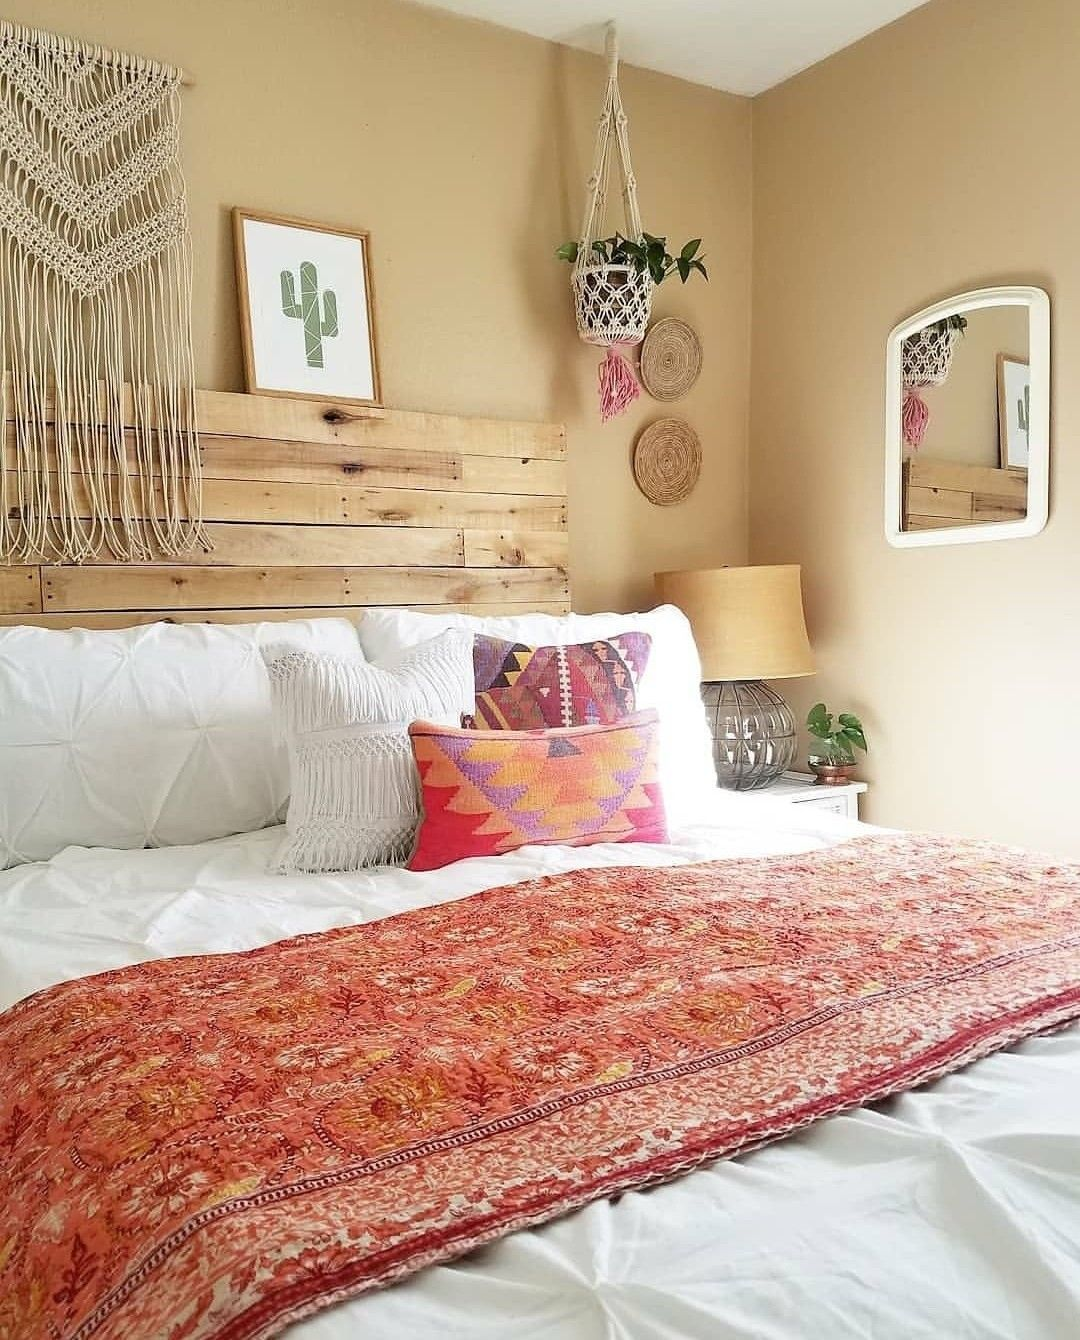 Pin by bohoasis on Boho Tapestry & Bedding | Bedroom decor ... on Boho Bedroom Ideas On A Budget  id=97925